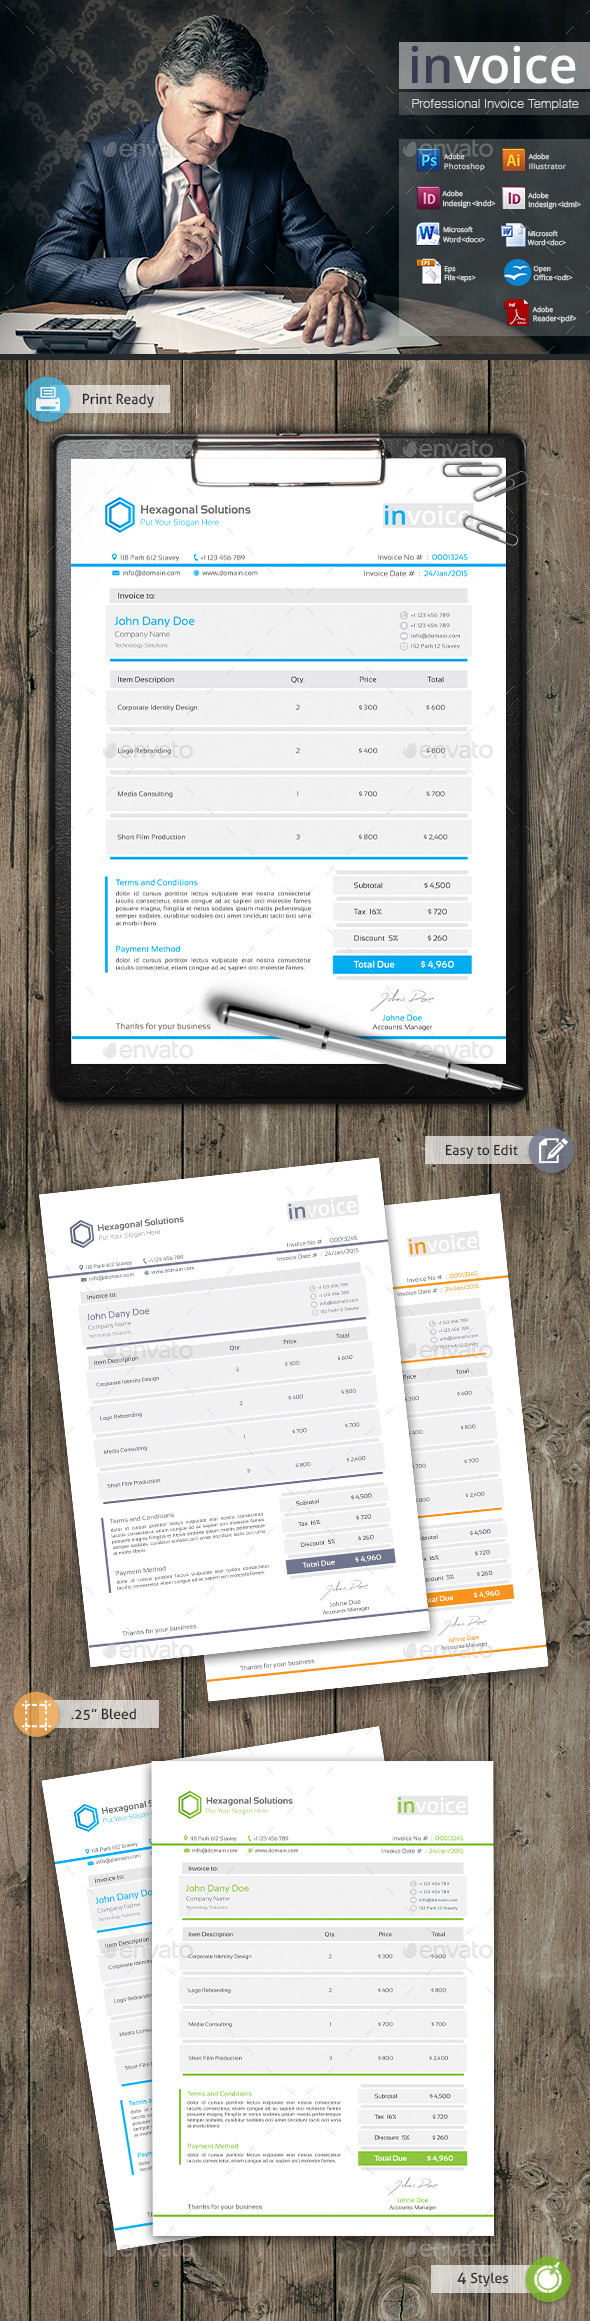 GraphicRiver invoice 11007712